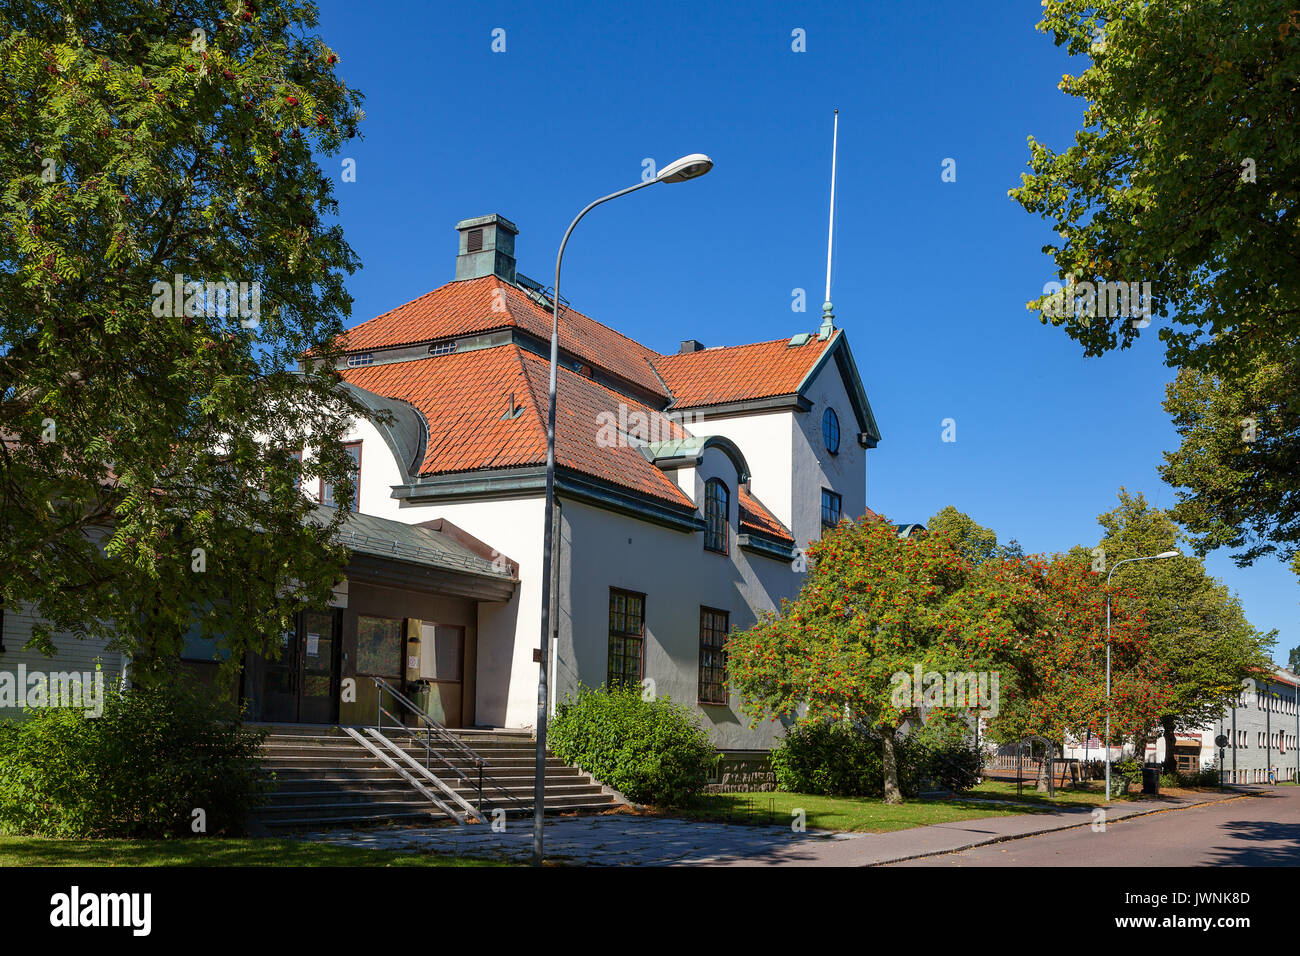 White stone buildng with red tiled roof. Hedemora, Sweden. - Stock Image